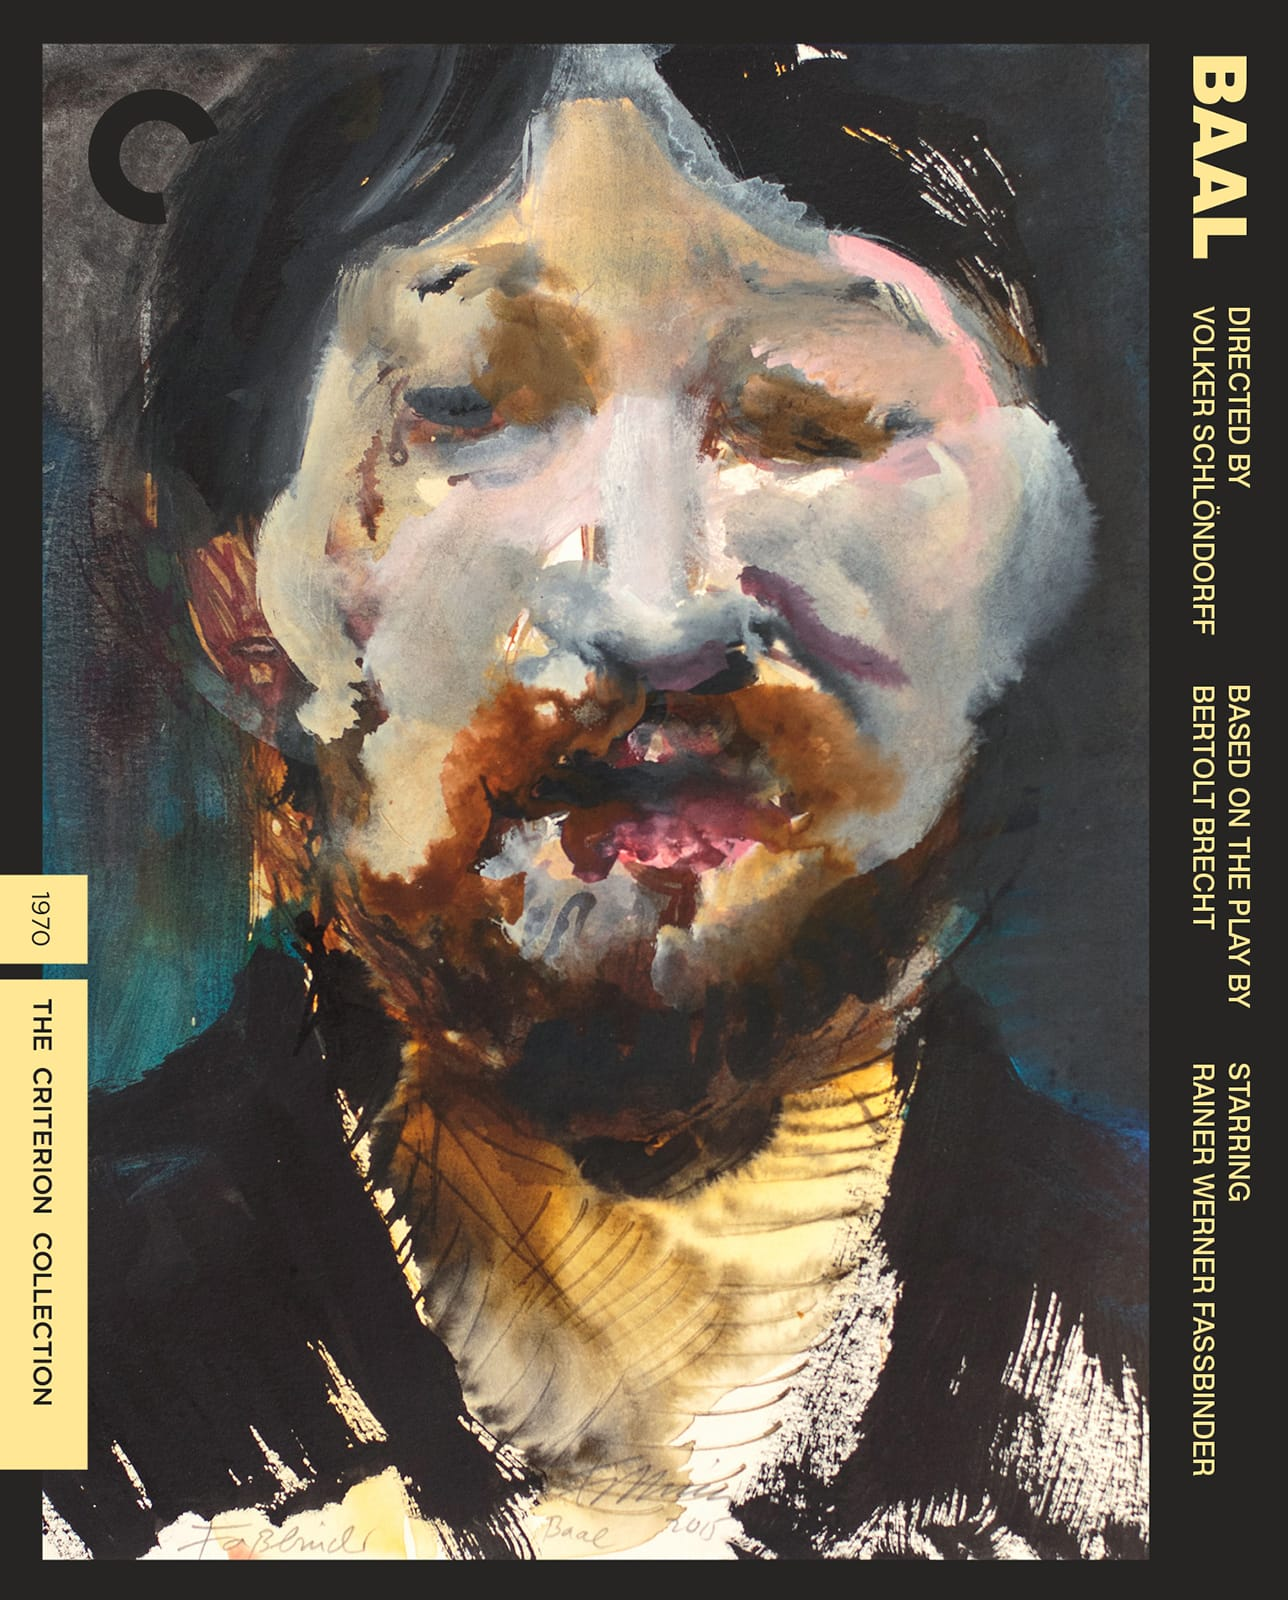 Baal (1970) | The Criterion Collection